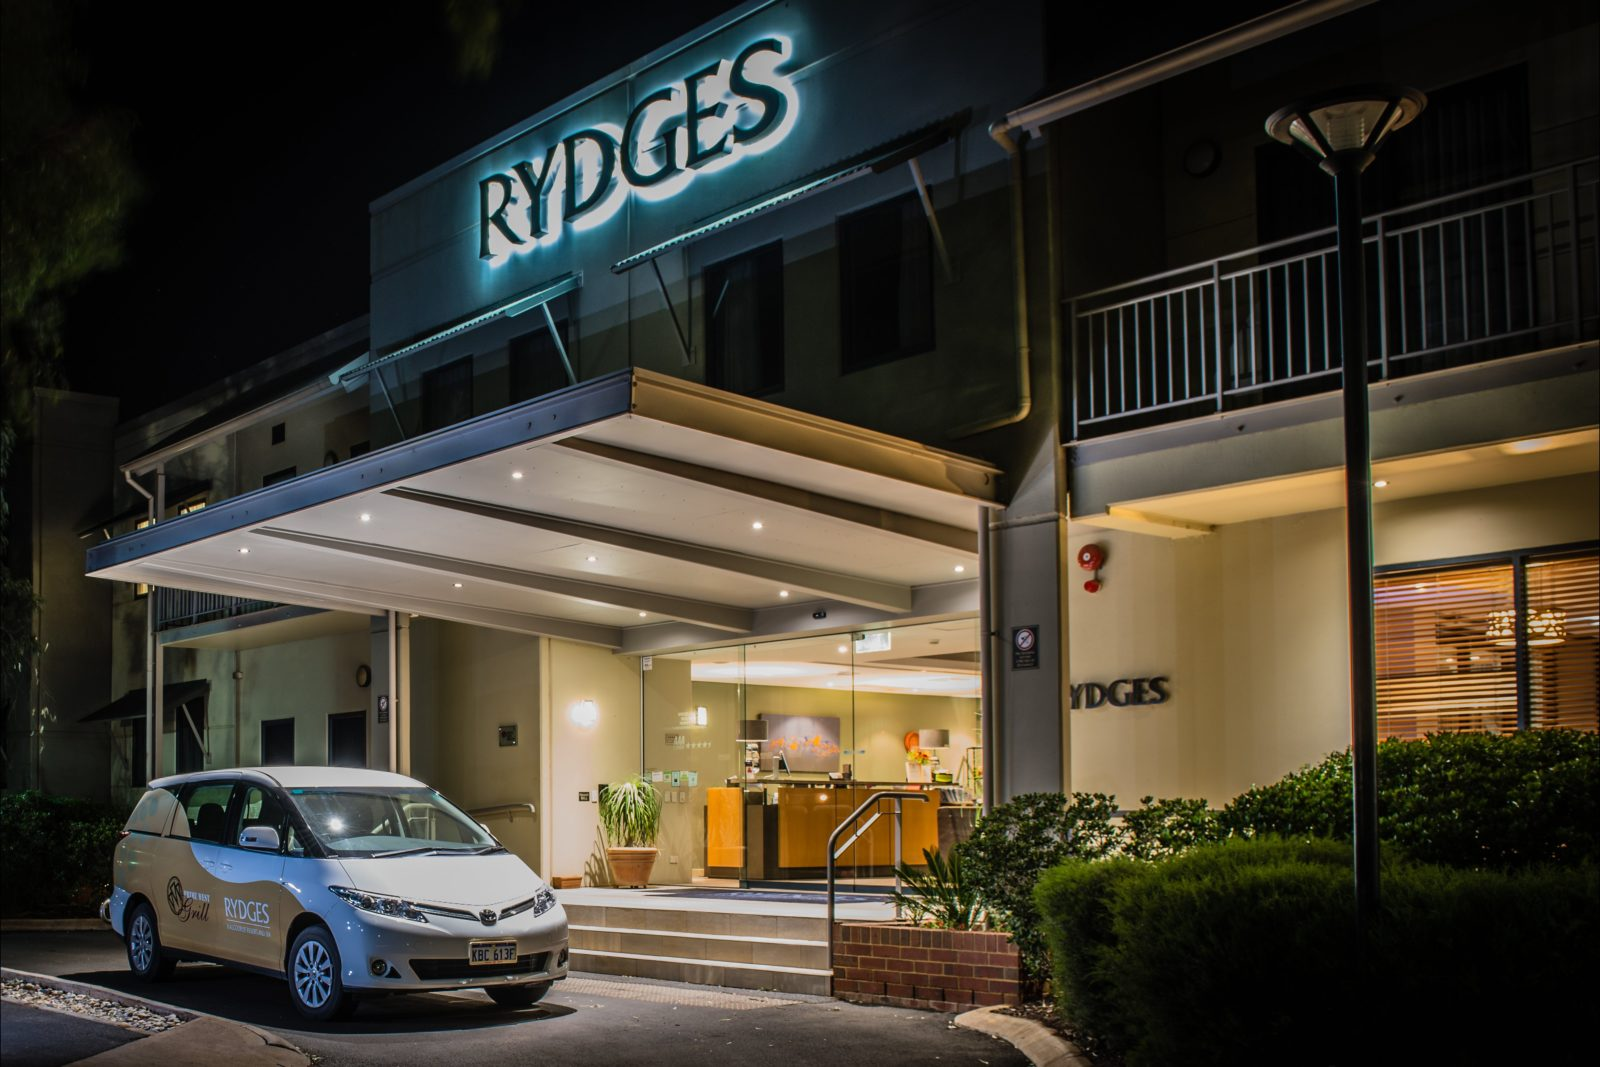 Rydges Kalgoorlie Resort and Spa, Kalgoorlie, Western Australia